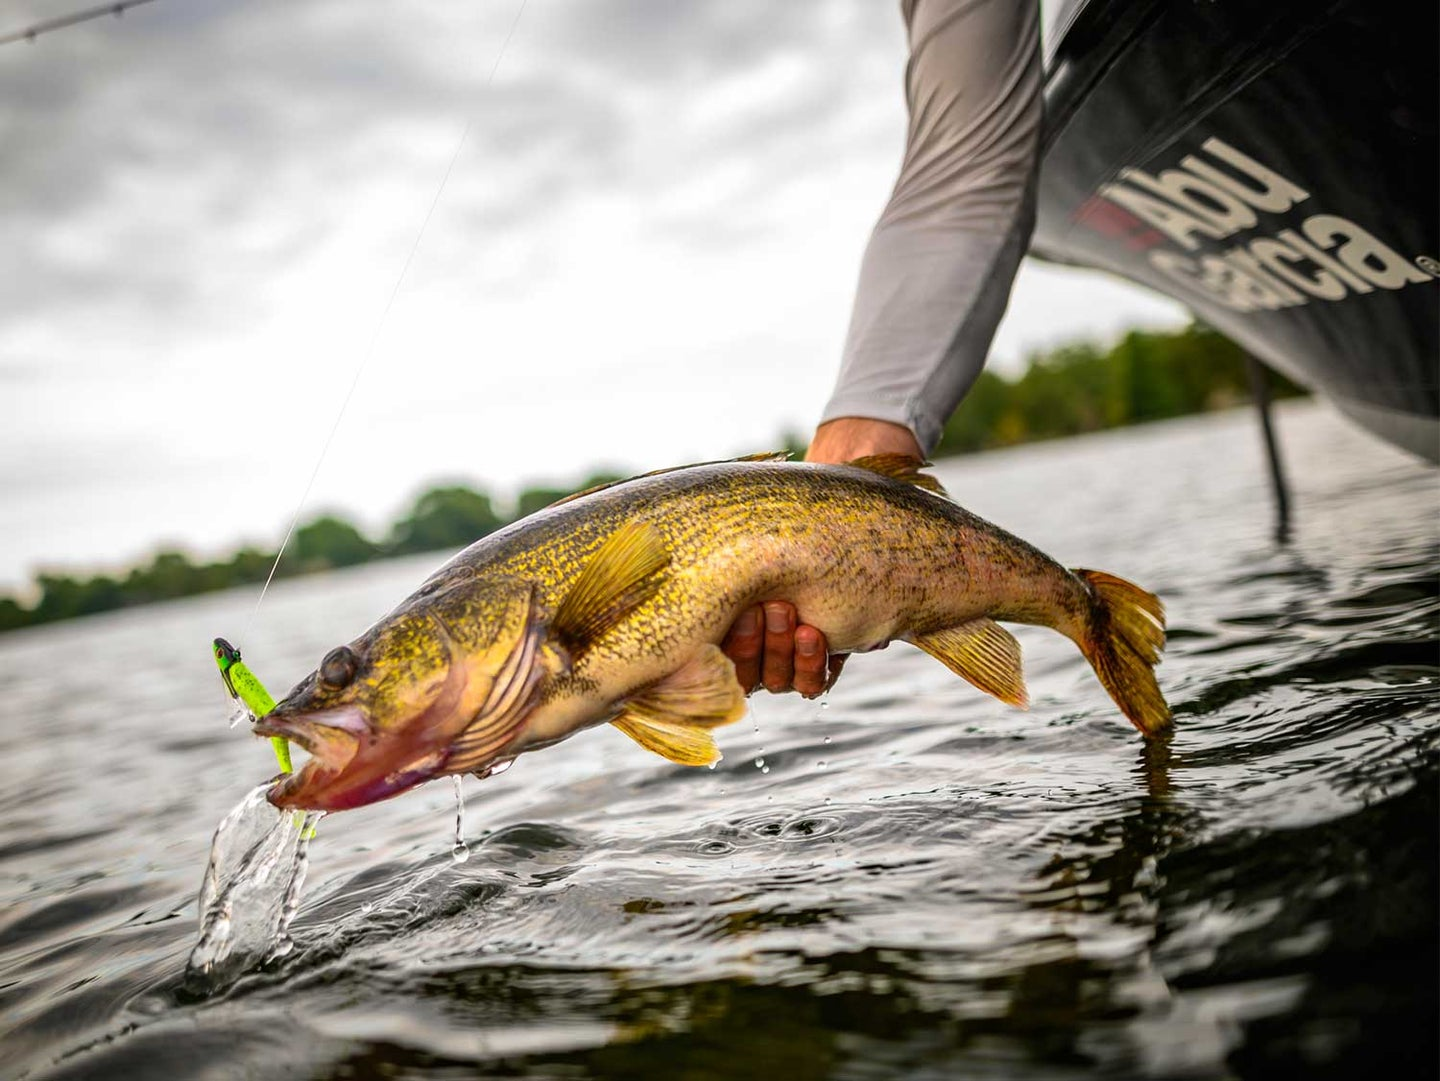 An angler pulling a walleye fish out of the water.